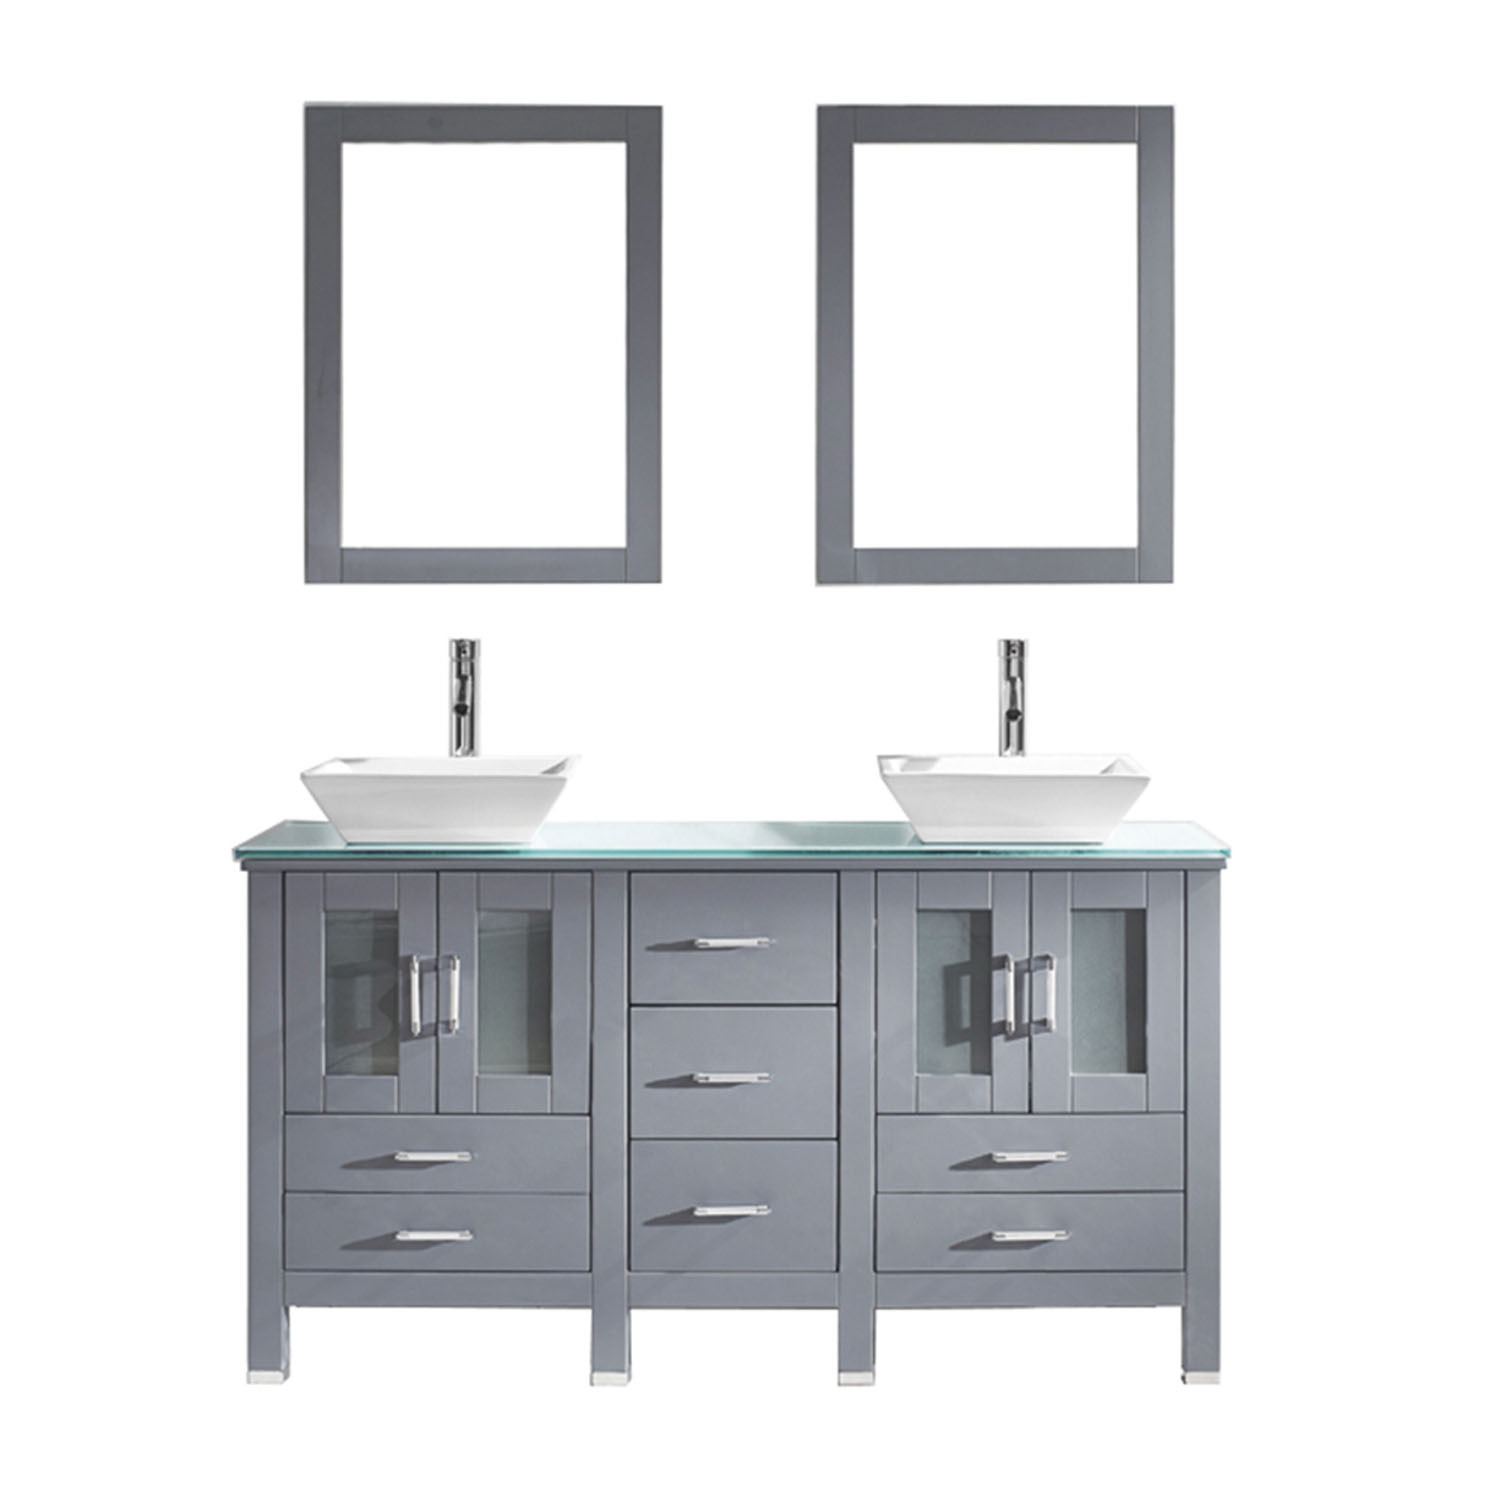 Virtu MD-4305-G-GR-001 Bradford 60 Inch Double Bathroom Vanity Set In Grey With Tempered Glass Top